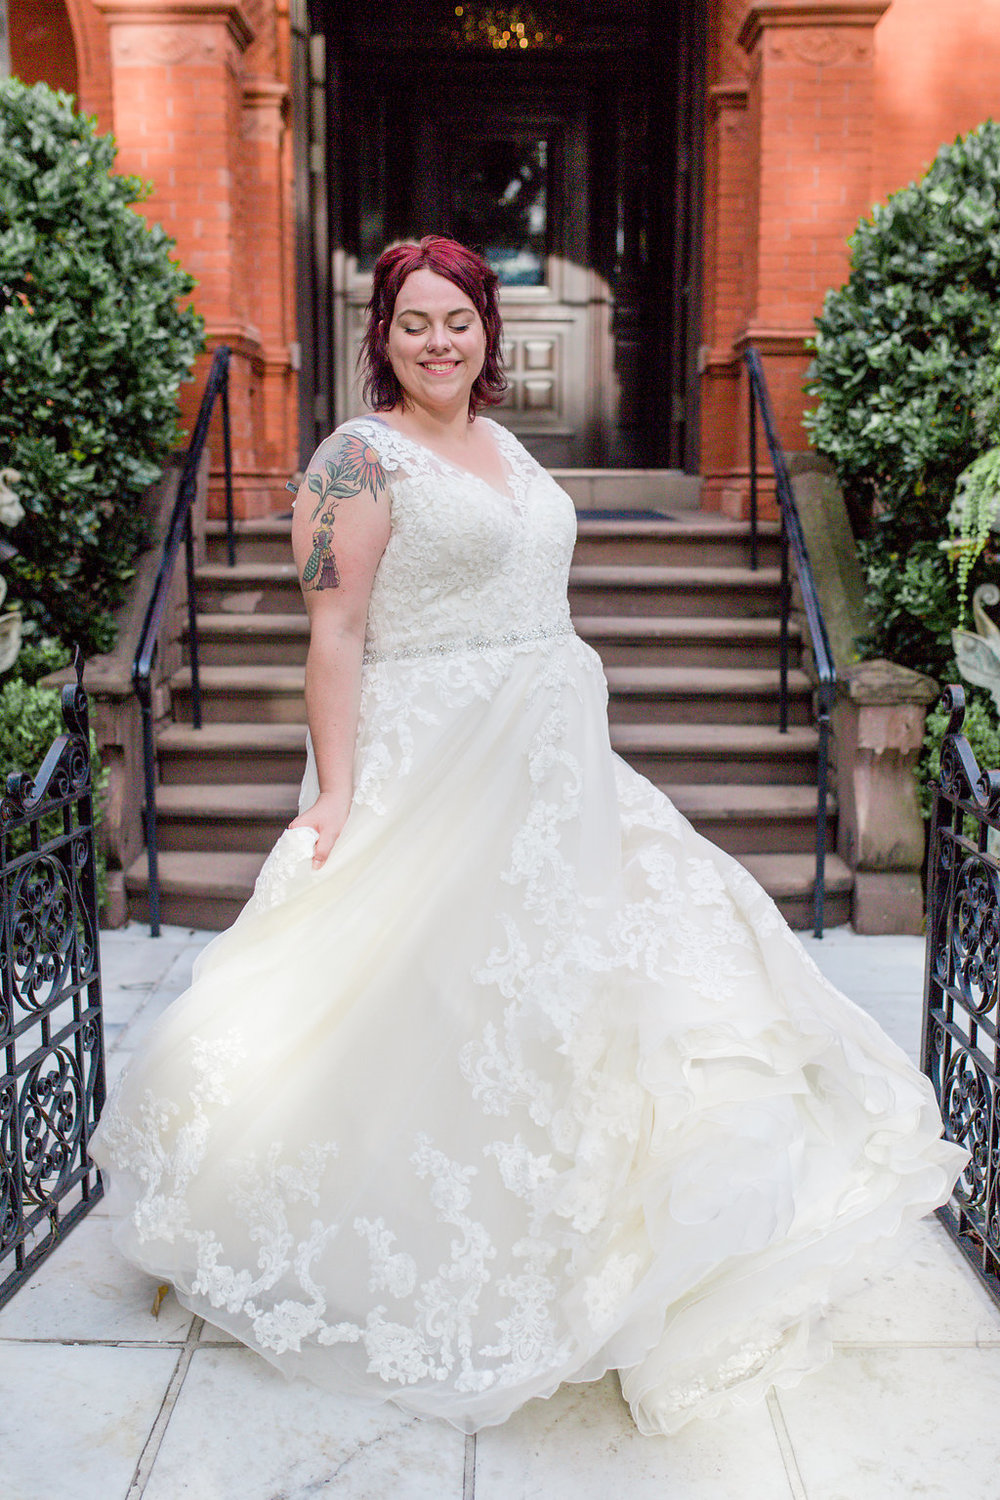 ivory-and-beau-bridal-boutique-alexis-sweet-photography-plus-sized-wedding-gowns-savannah-ga-plus-sized-wedding-dress-savannah-ga-11.jpg